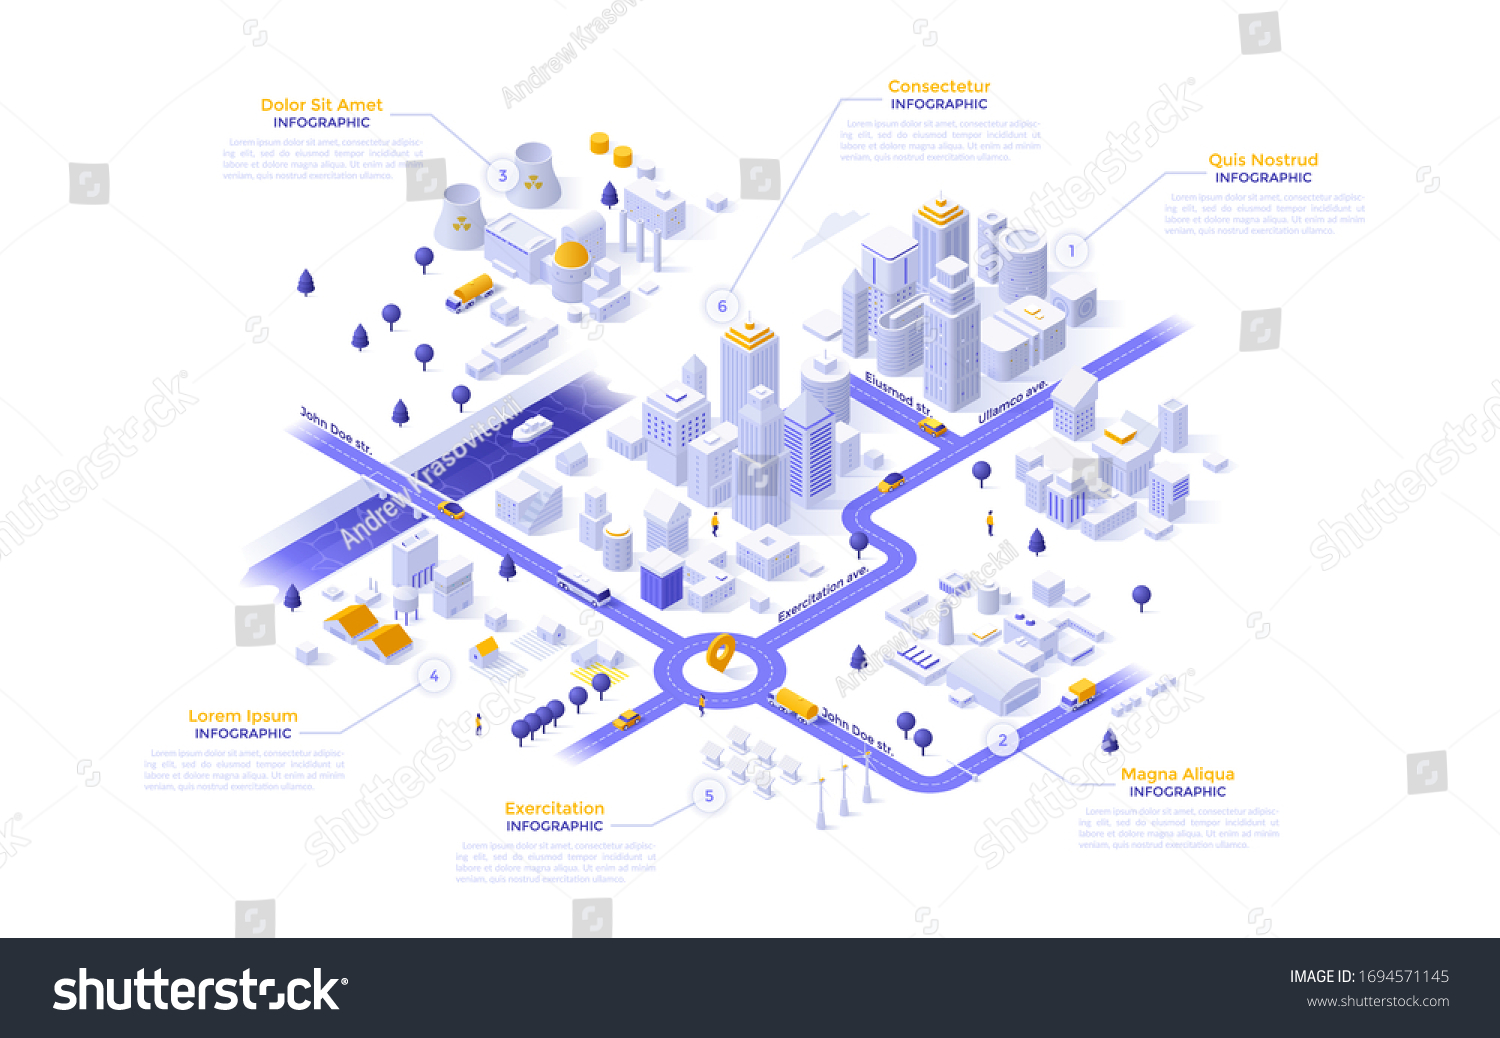 Isometric map, plan, scheme of modern megapolis riverside city with different zones - downtown, industrial district with power plants, suburban area. Infographic design template. Vector illustration. #1694571145